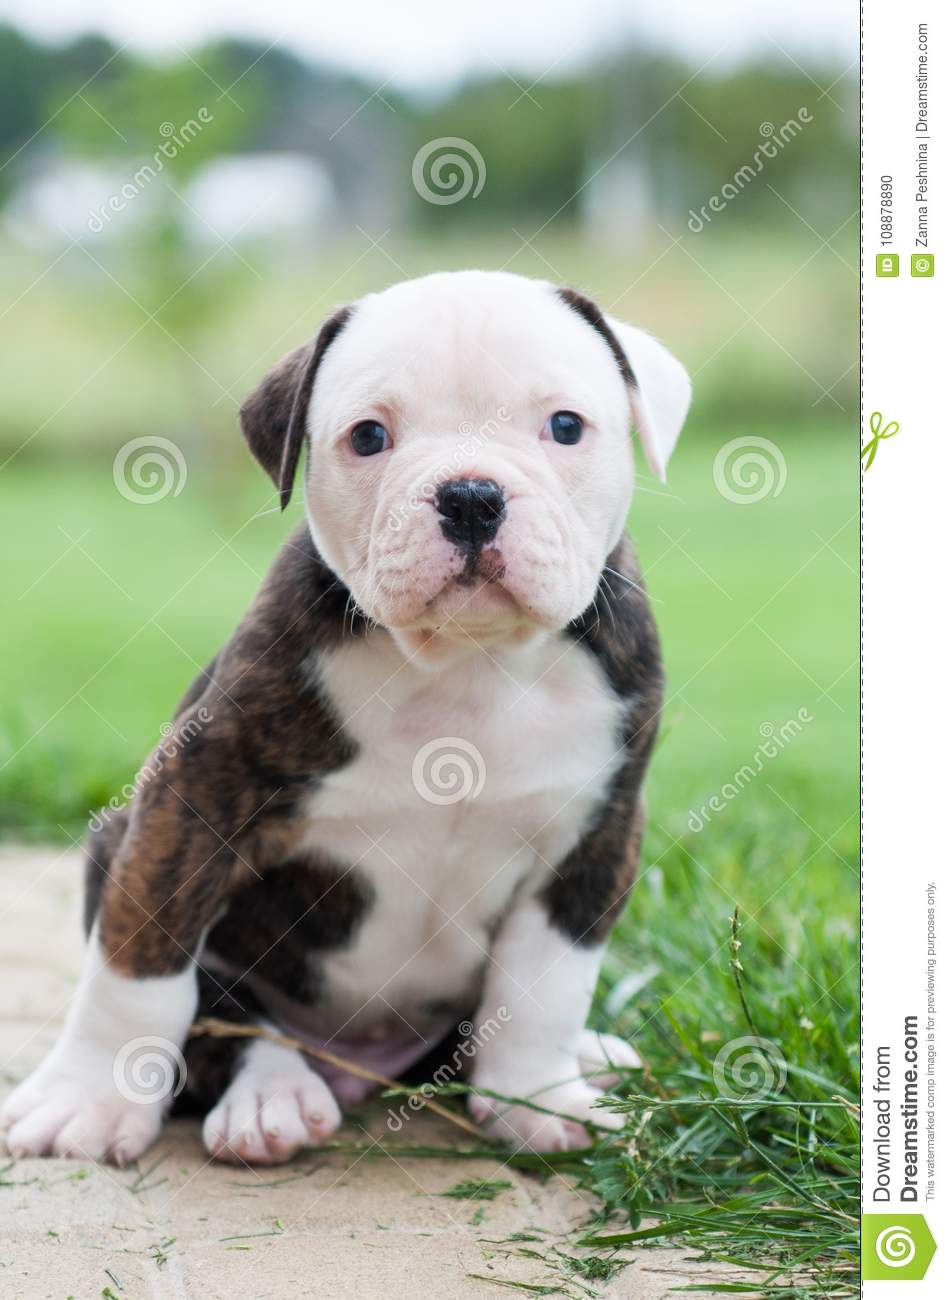 Funny Nice Red Tiger Coat American Bulldog Puppy Is Walking On Nature Stock Photo Image Of Care Bright 108878890